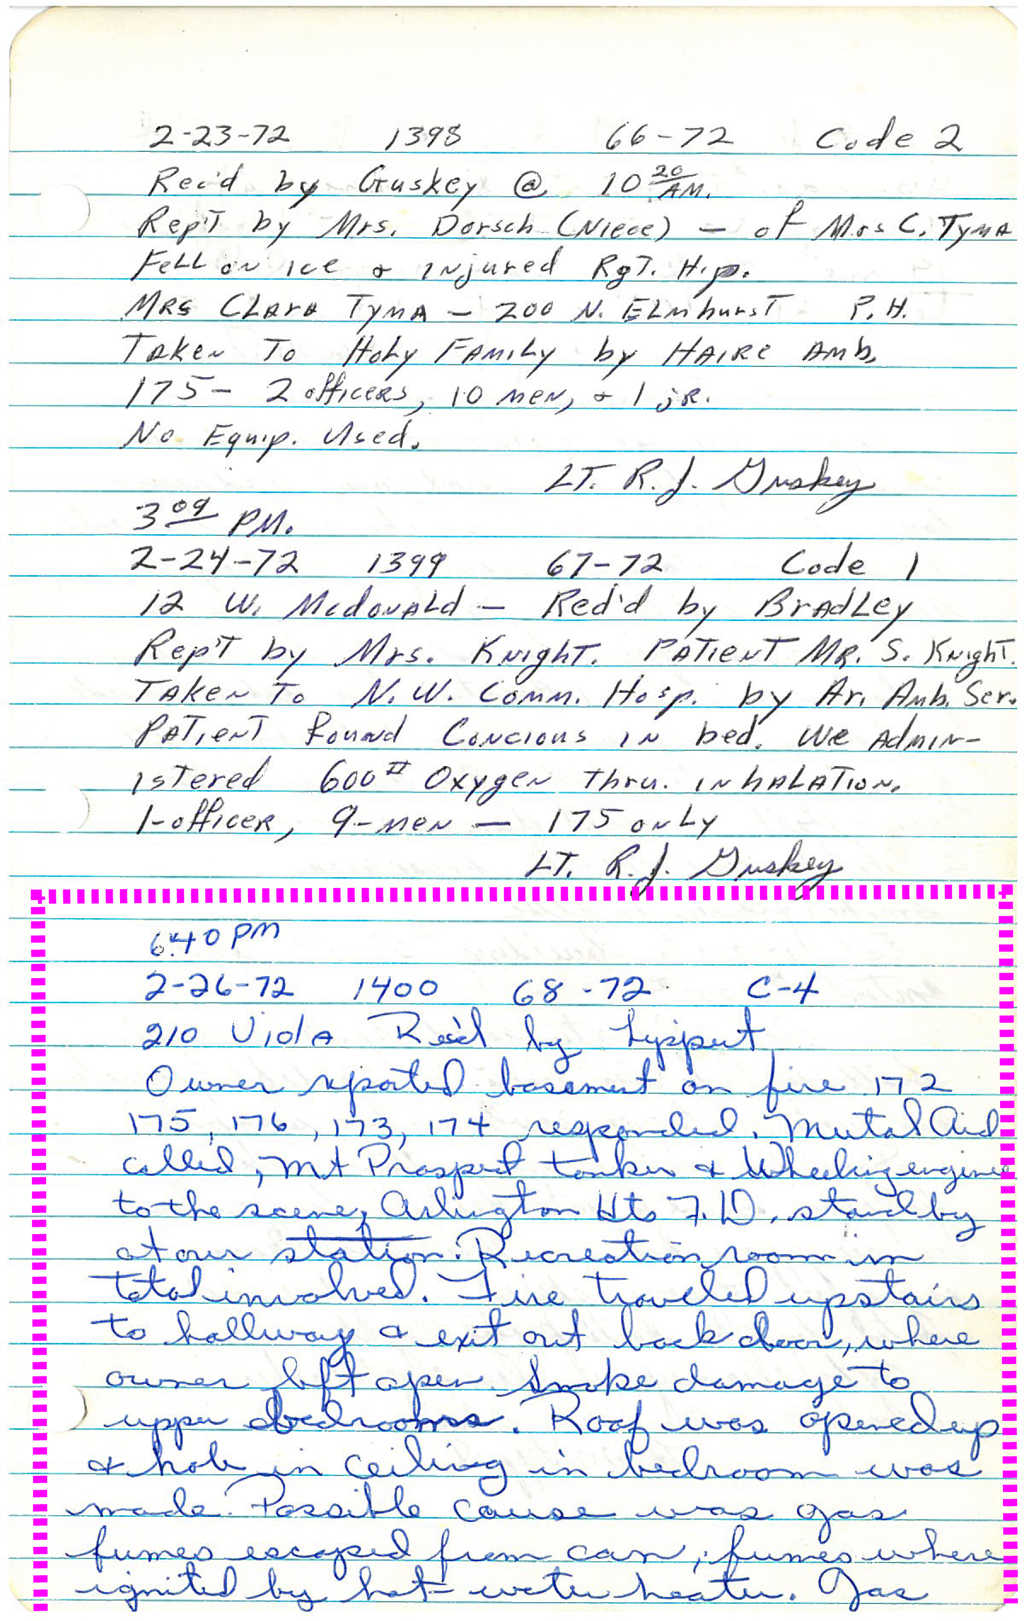 Prospect Heights Fire District history log book entry